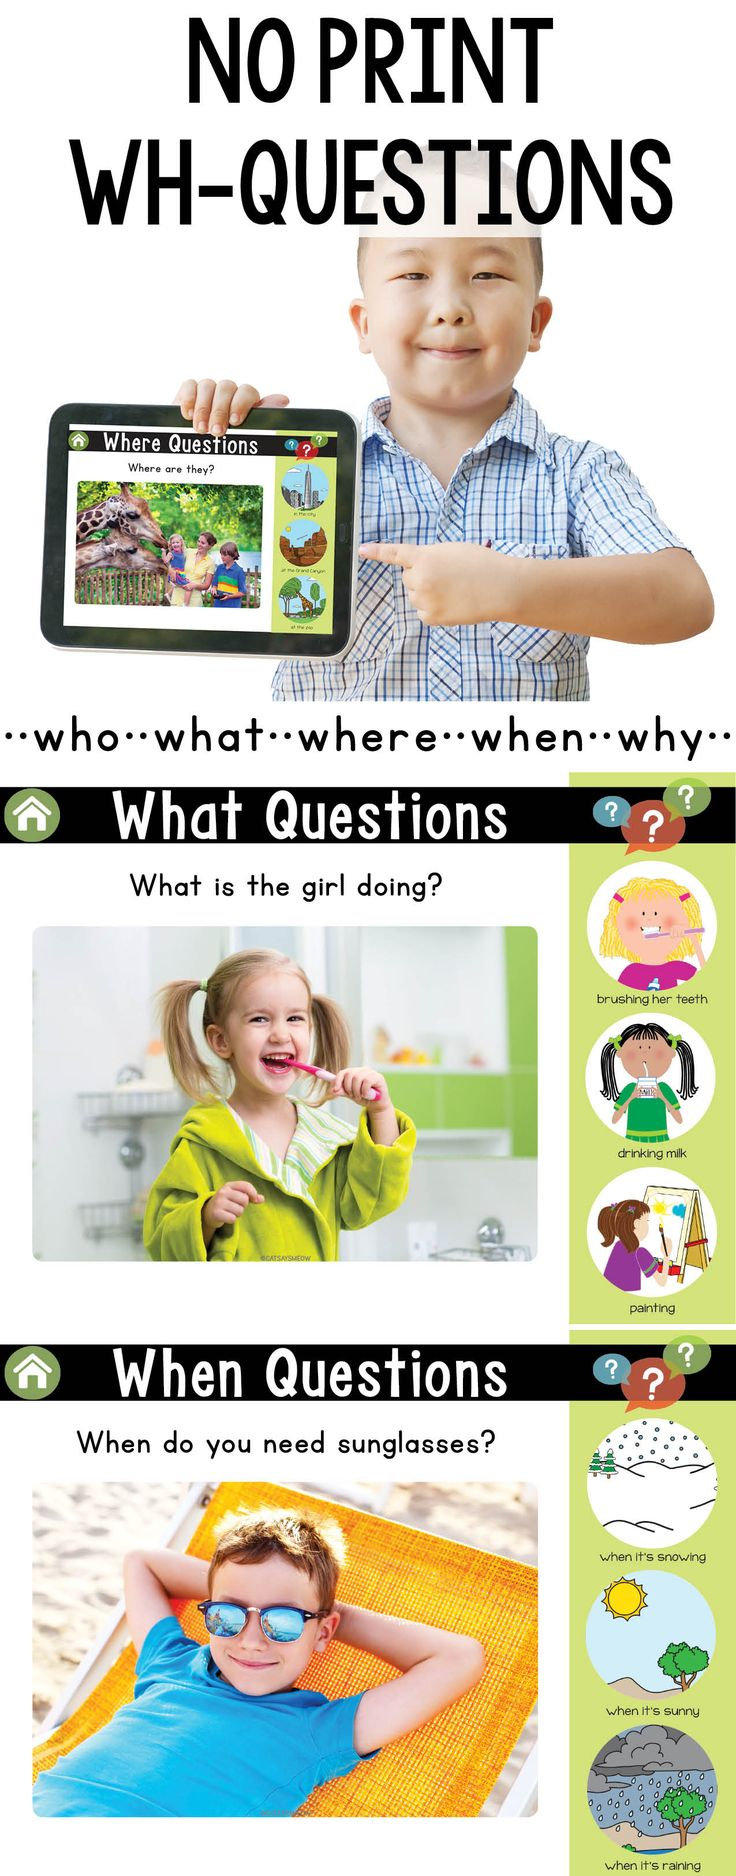 No Print Wh-Questions with Answer Choices (plus printable cards) – Connie Bentley